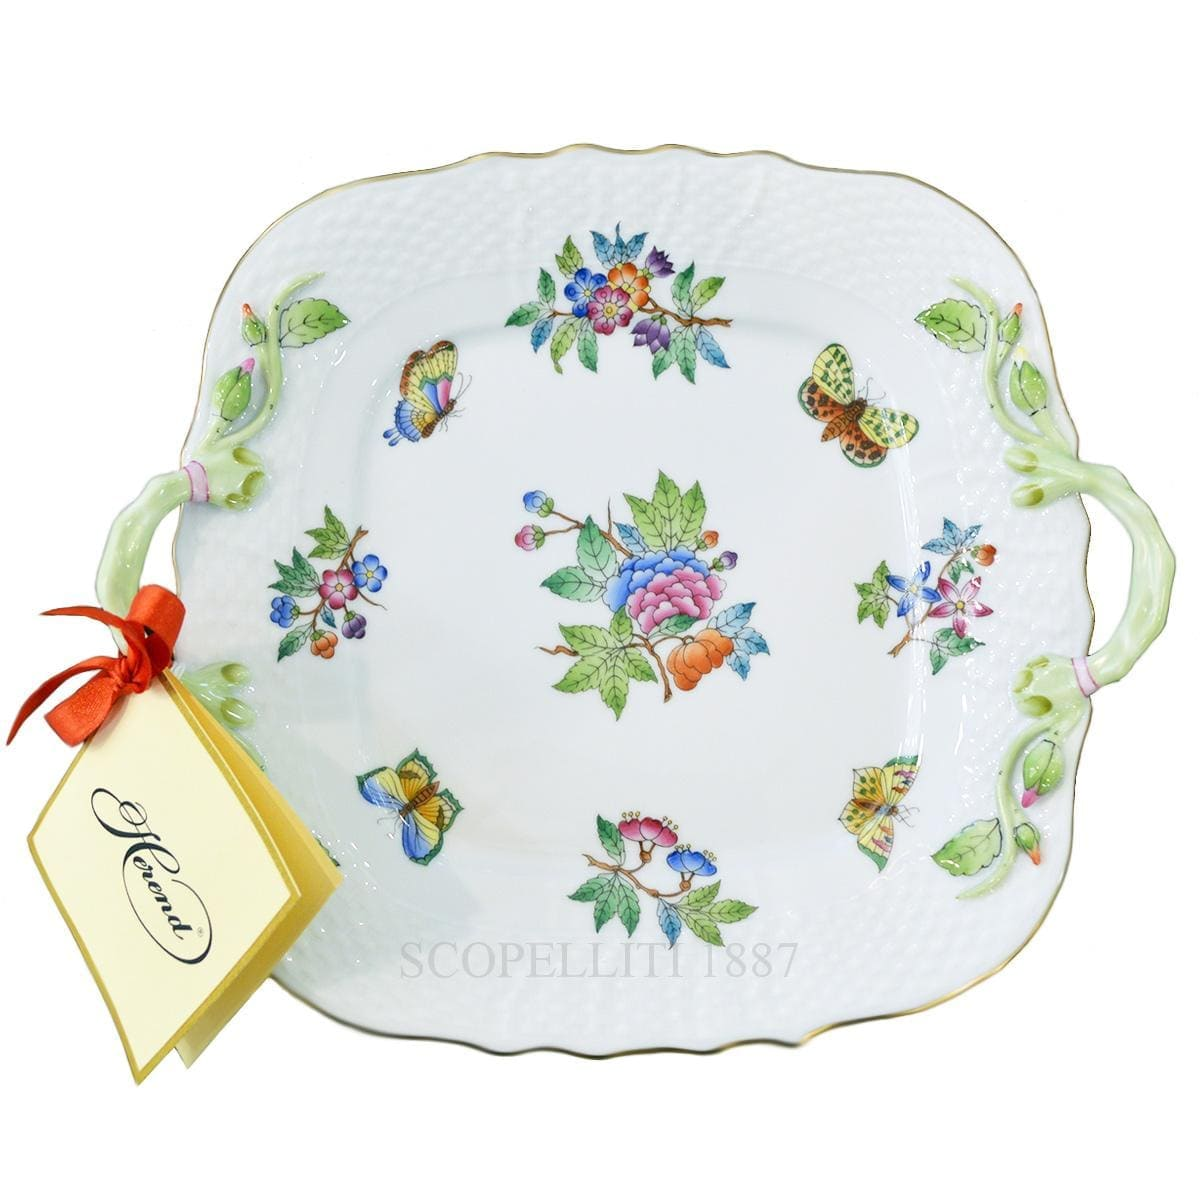 herend porcelain queen victoria square cake plate